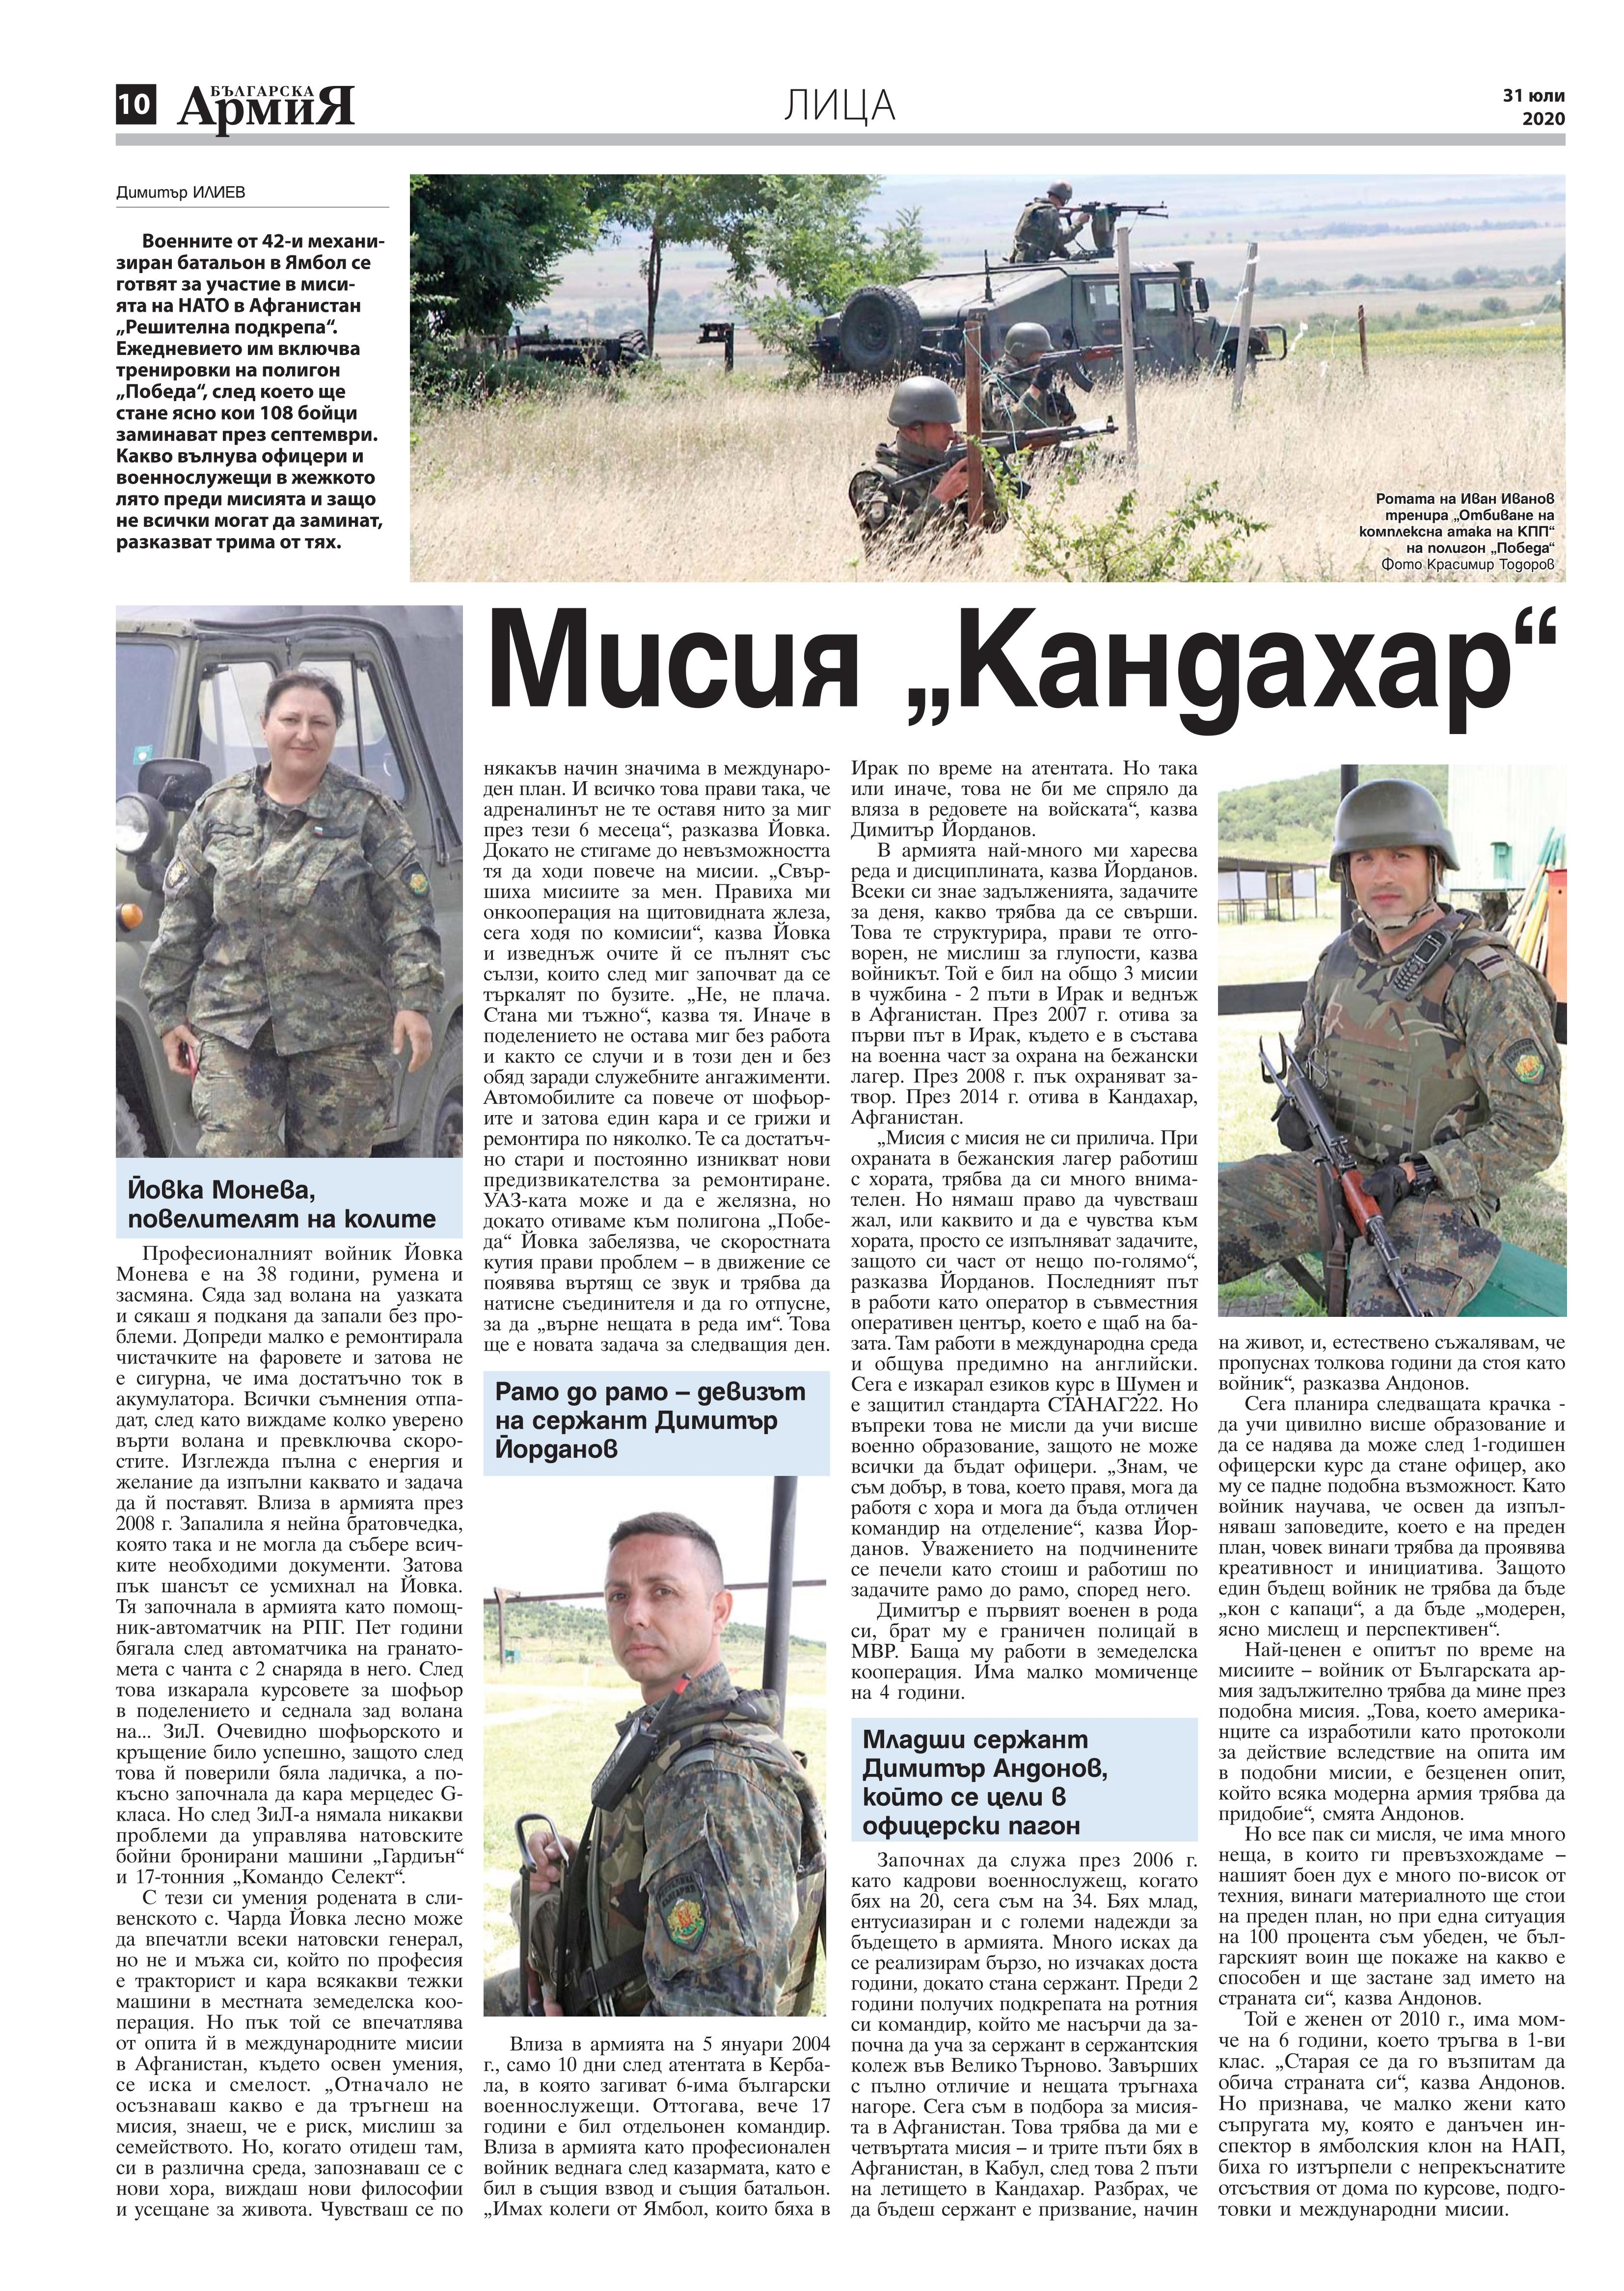 https://www.armymedia.bg/wp-content/uploads/2015/06/10.page1_-148.jpg